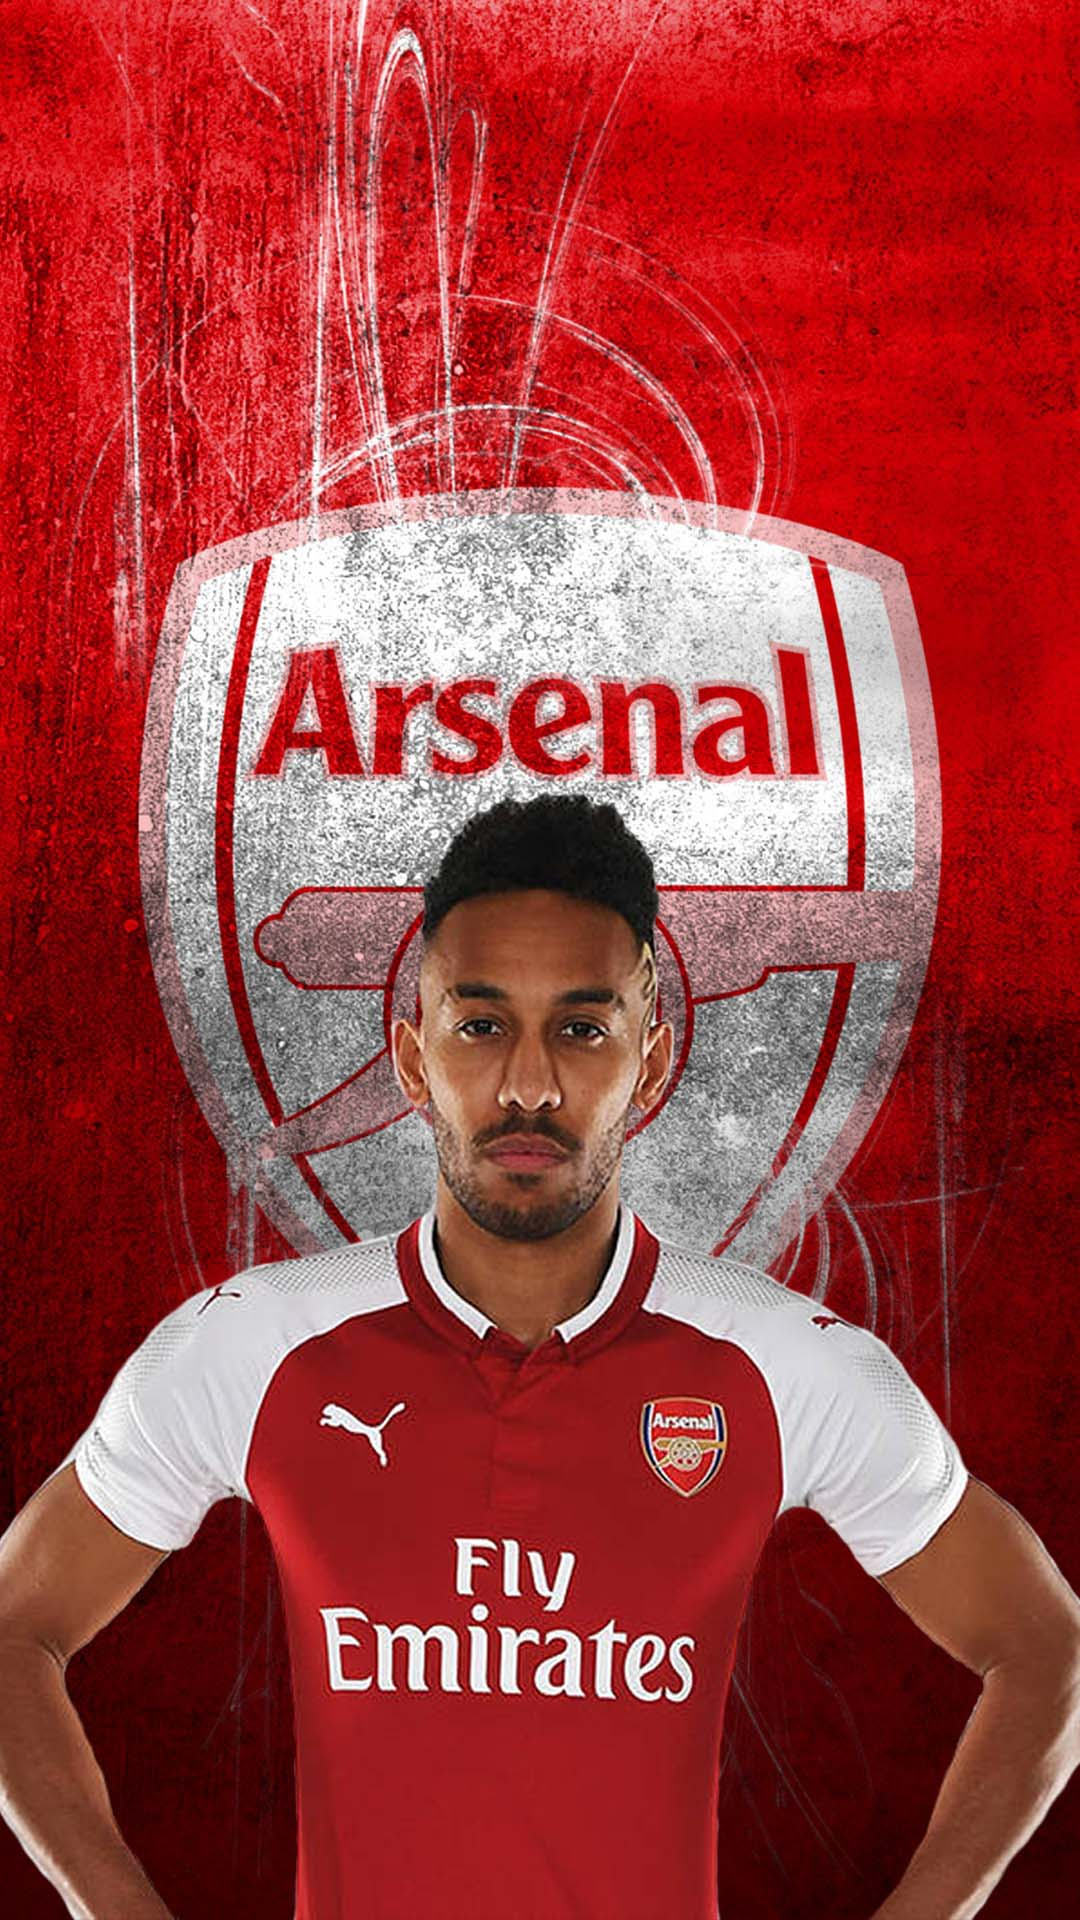 Aubameyang Arsenal Android Wallpaper   2019 Android Wallpapers 1080x1920